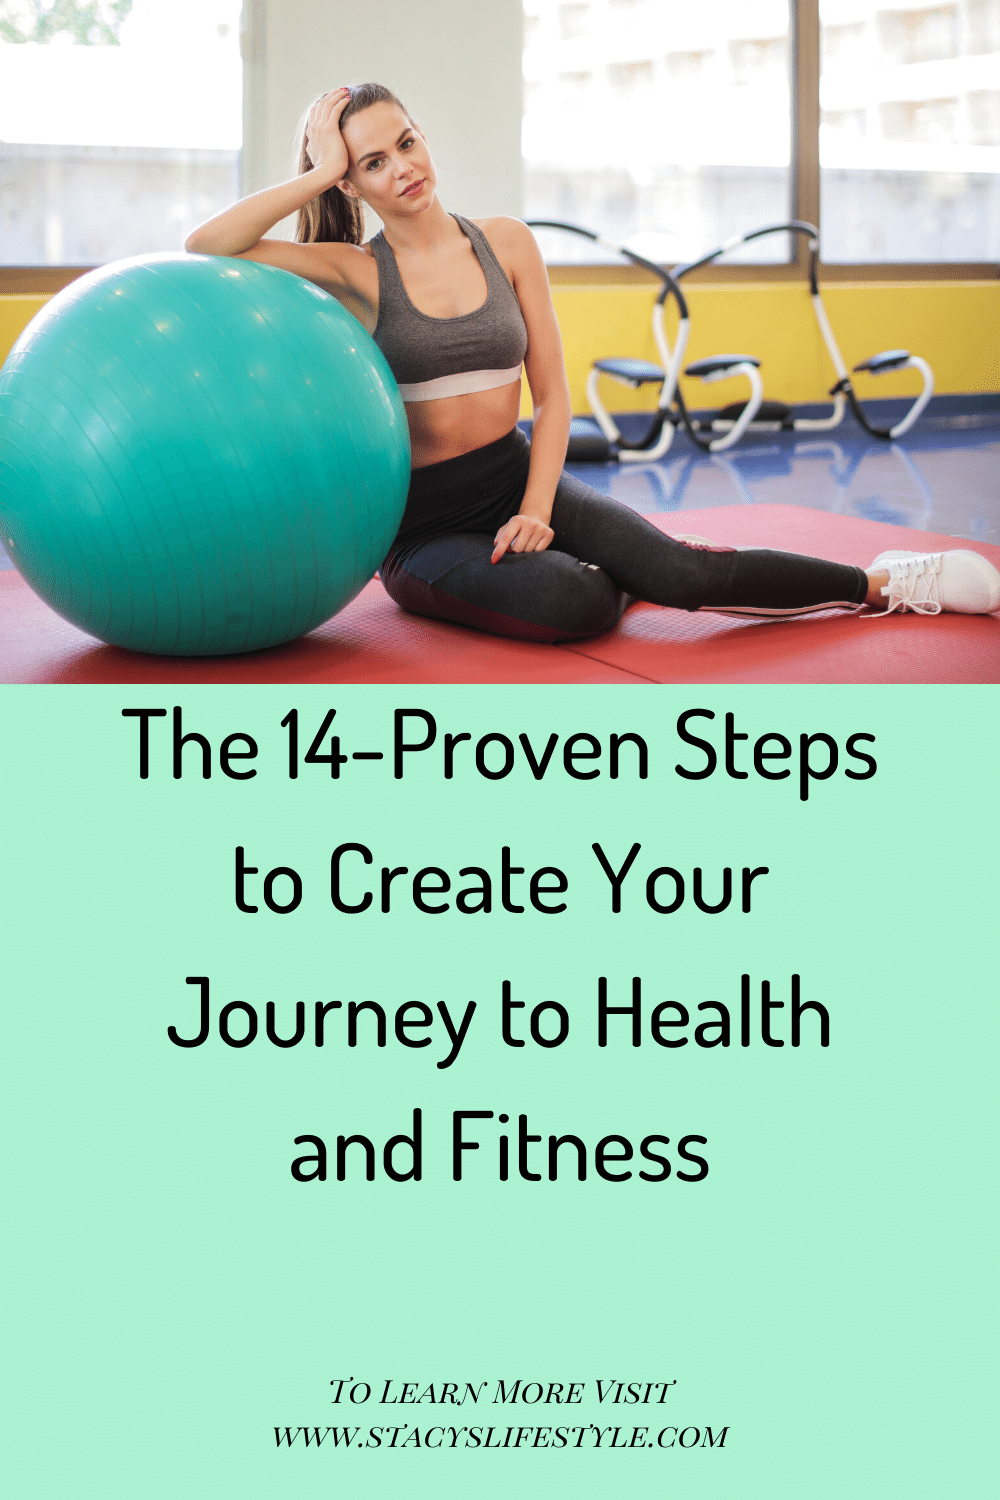 The 14-Proven Steps to Create Your Journey to Health and Fitness